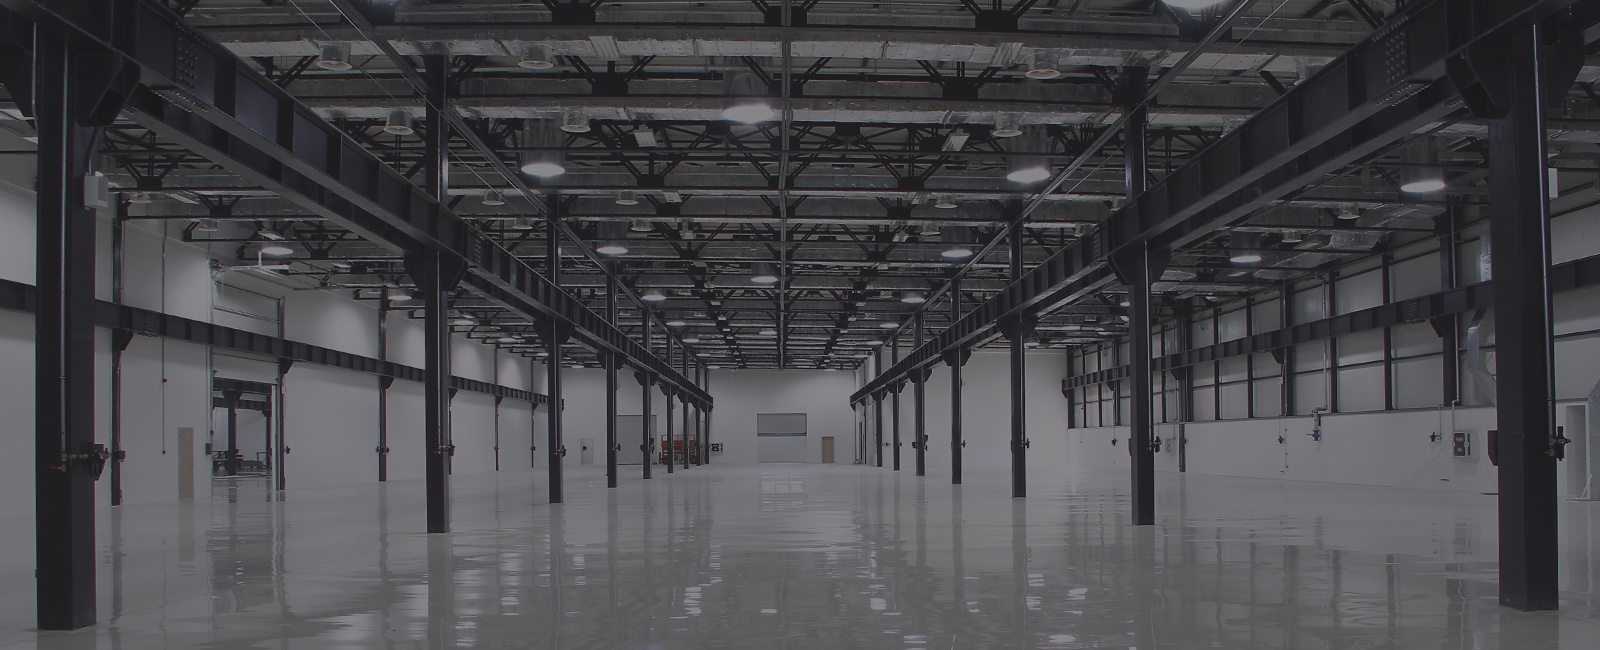 Empty Lit Warehouse